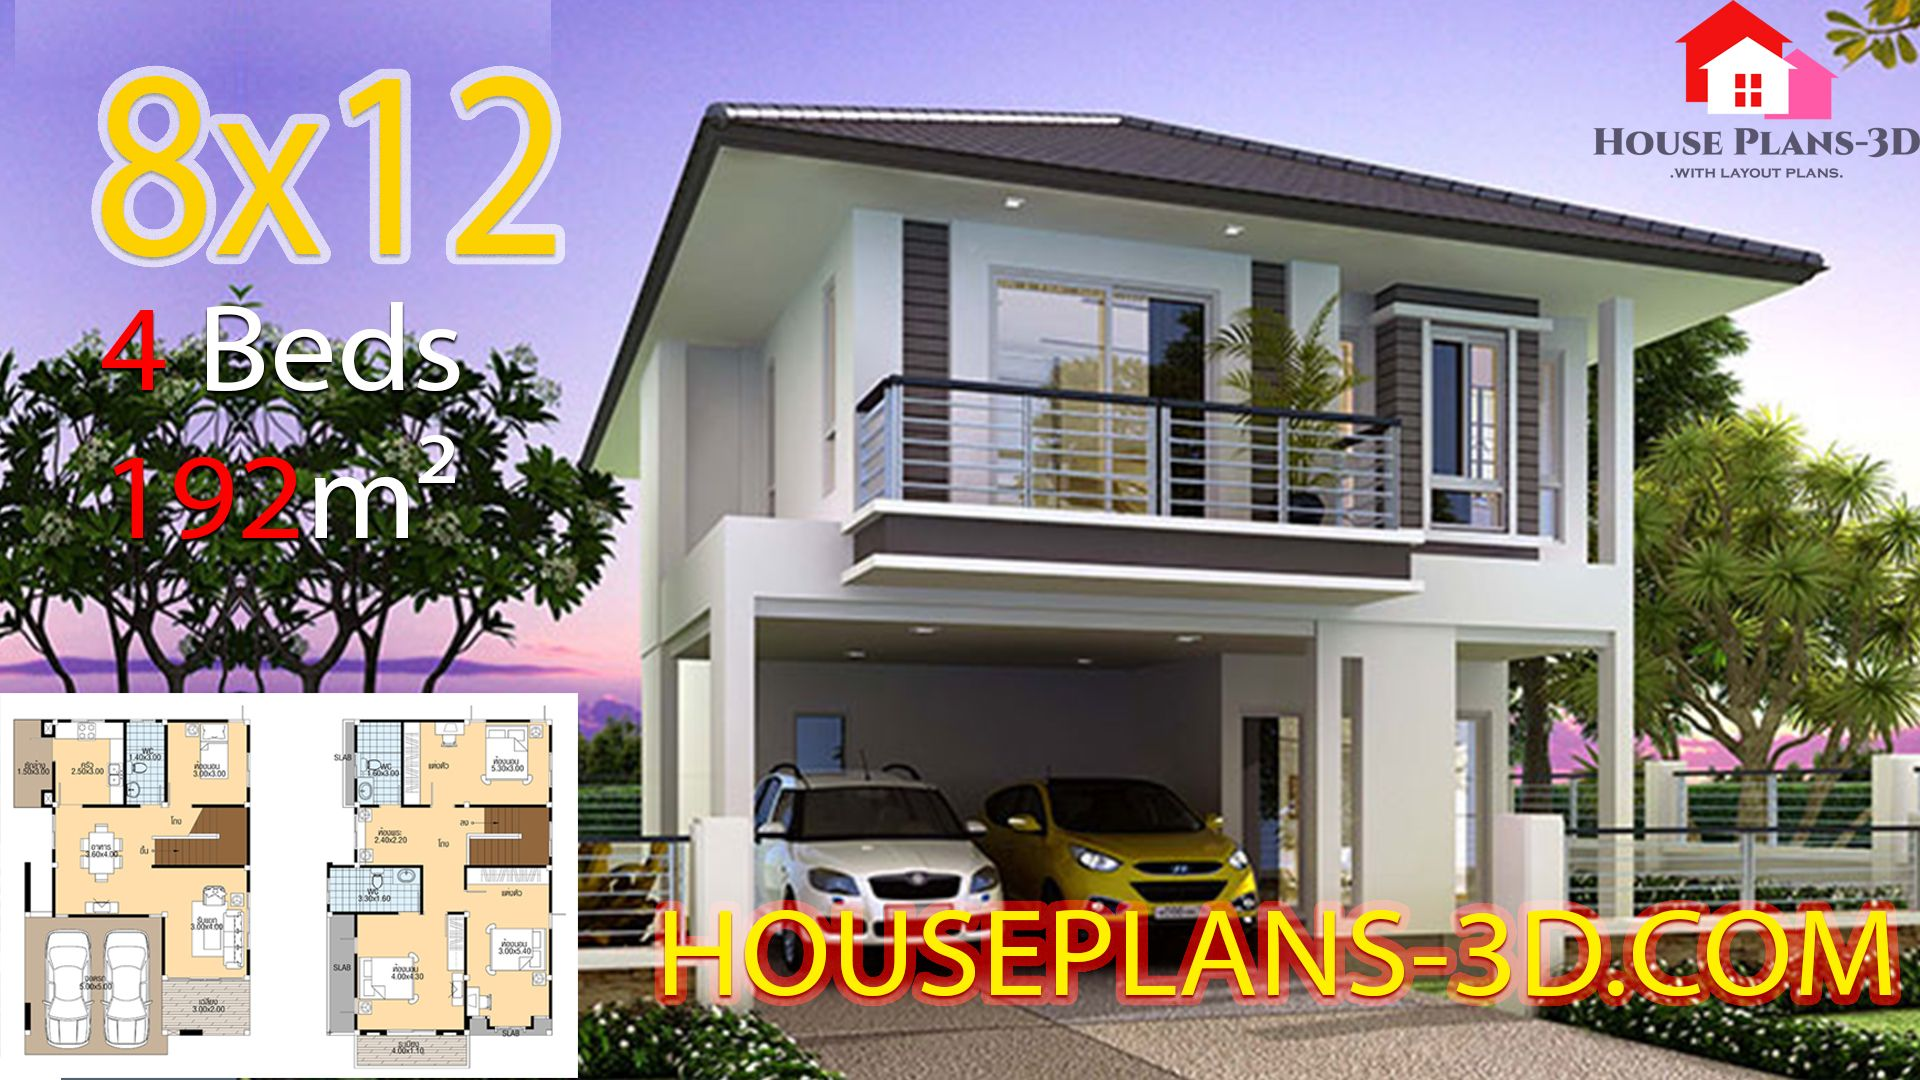 House Plans 3d 8x12 With 4 Bedrooms House Plans 3d In 2020 House Plans 5 Bedroom House Plans Dream House Plans